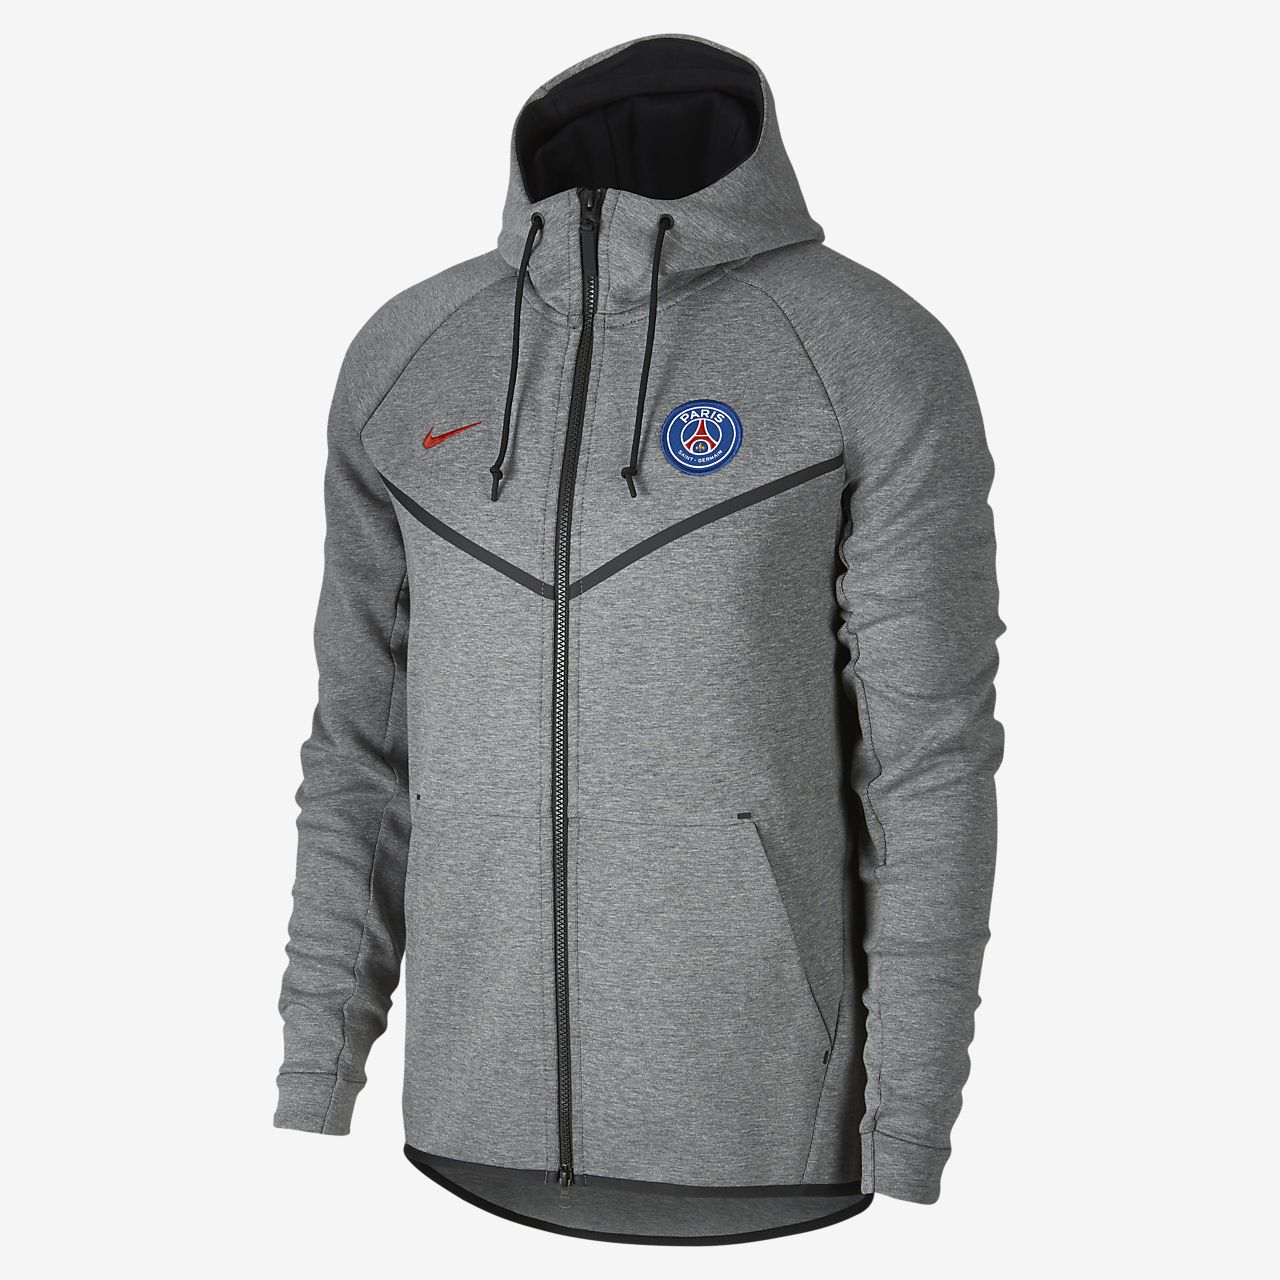 ... Paris Saint-Germain Tech Fleece Windrunner Men's Jacket